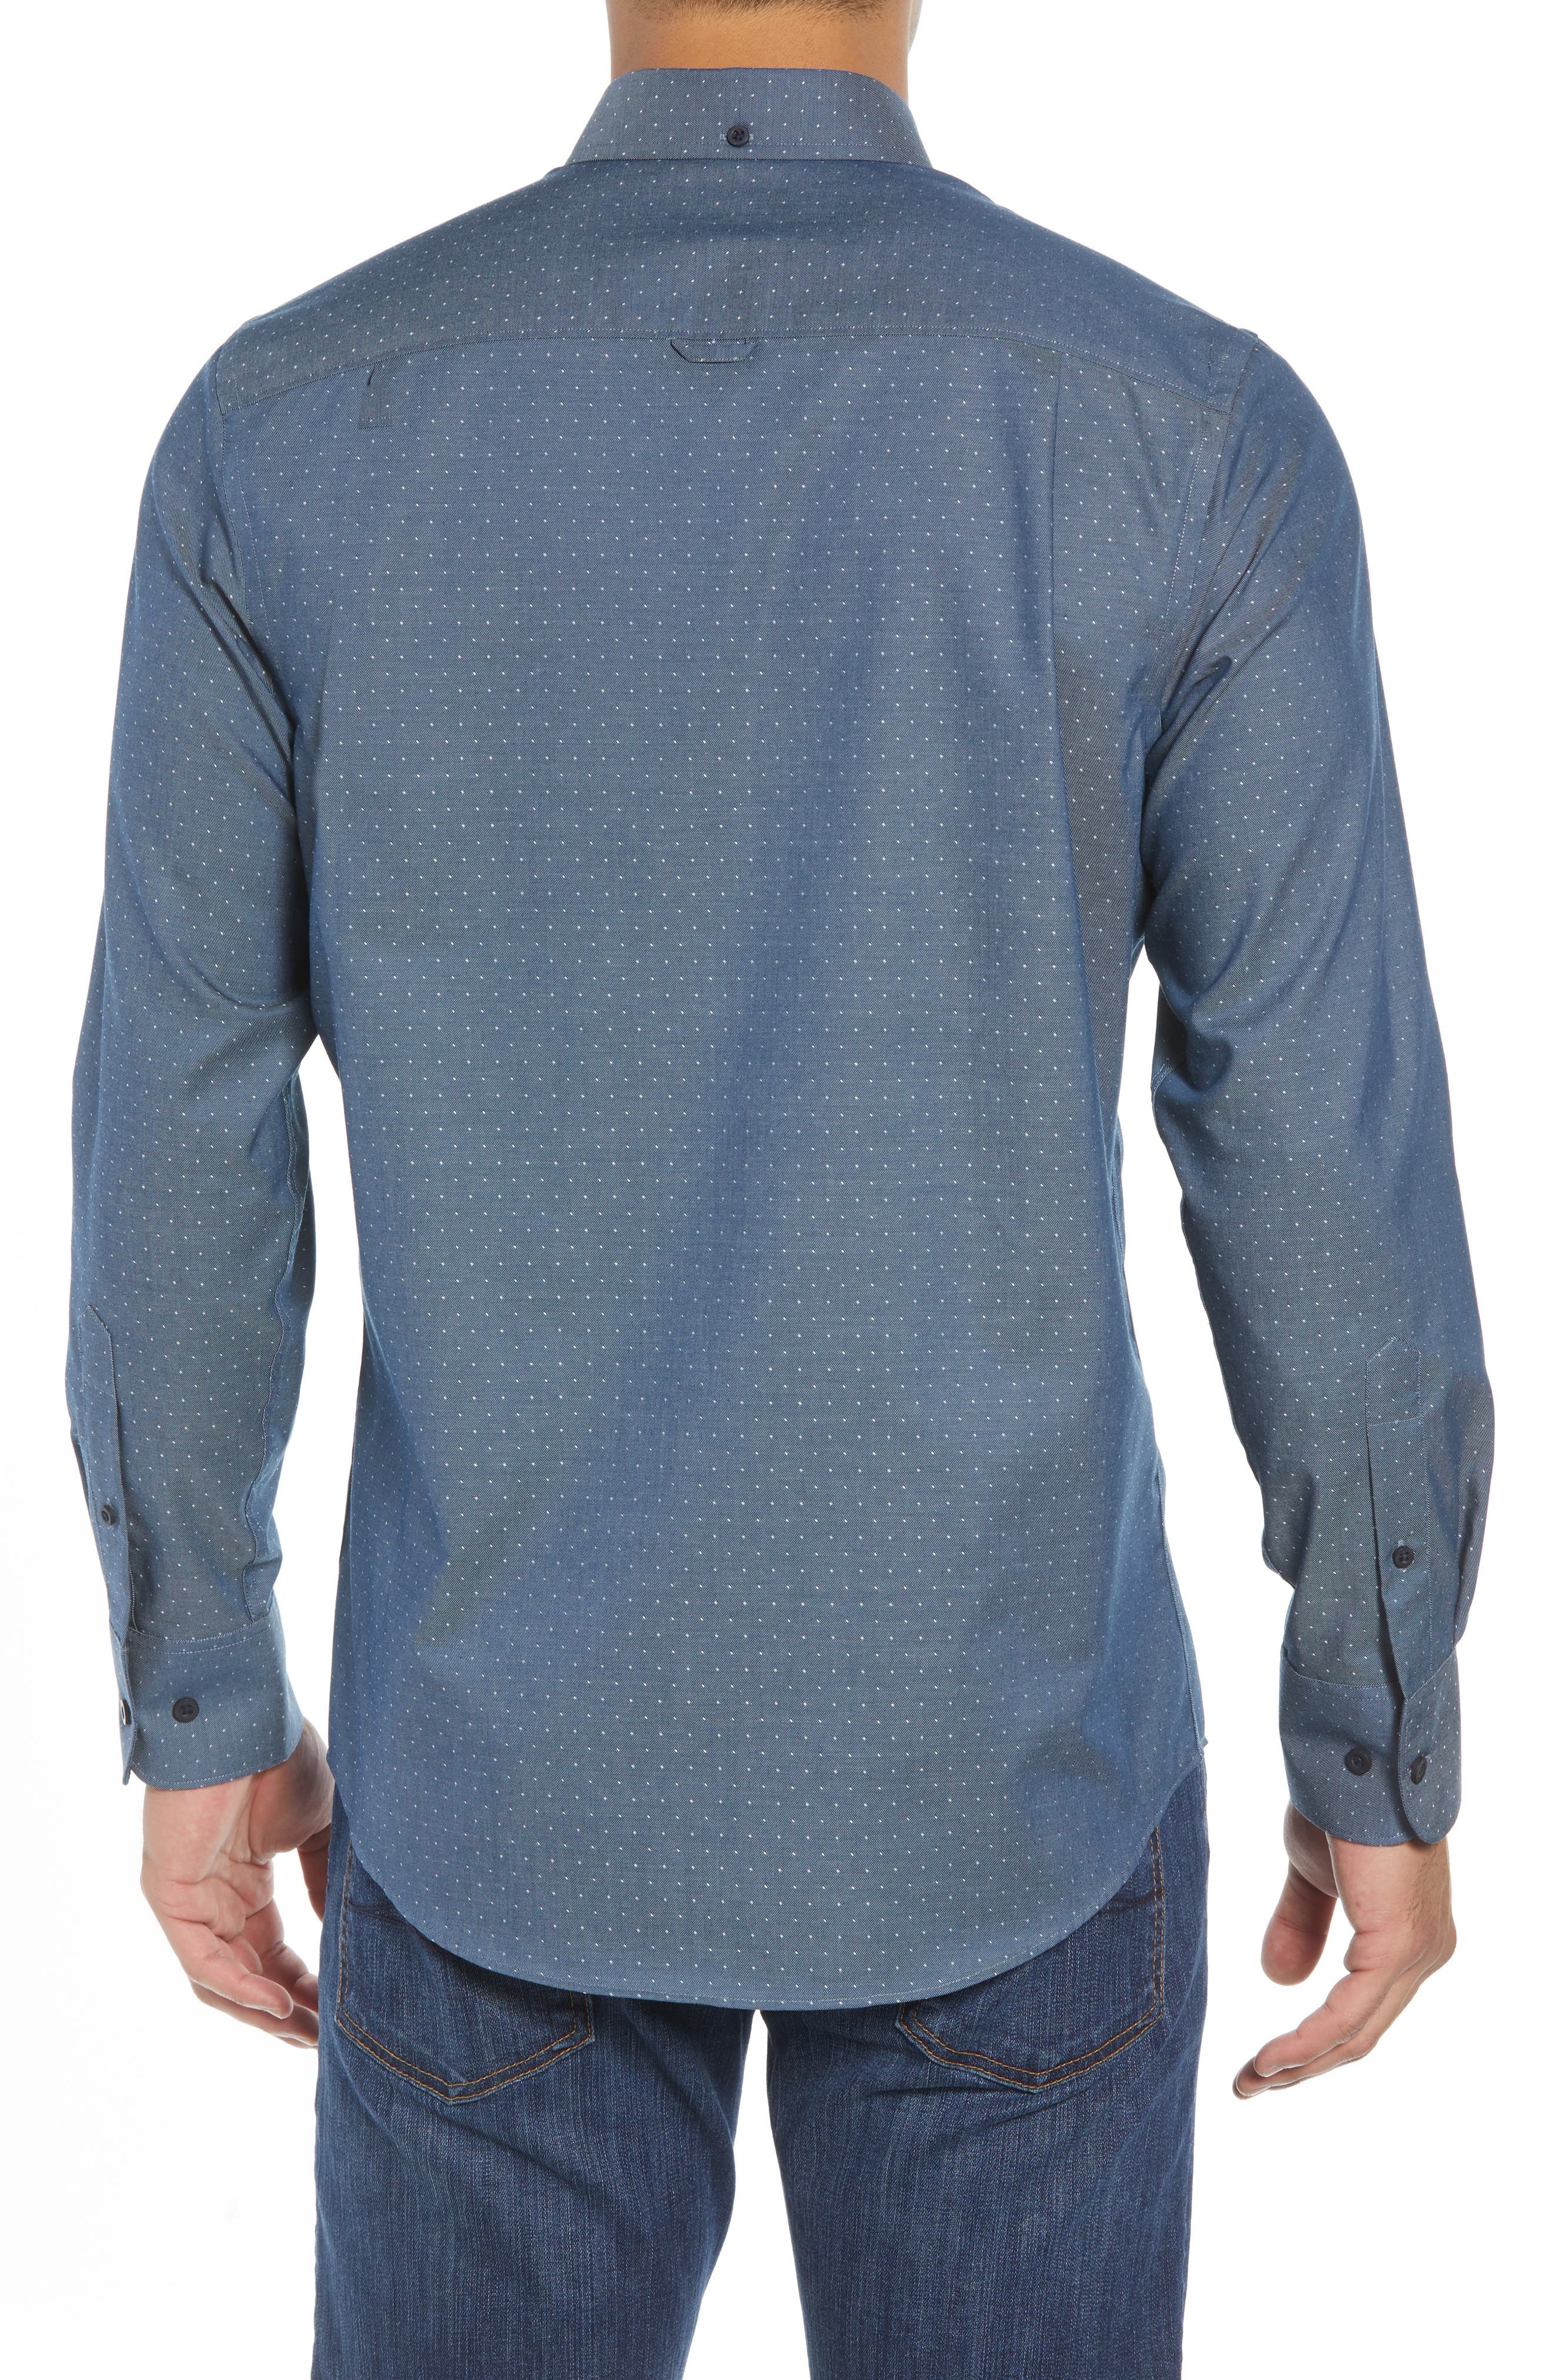 Regular Fit Dobby No-Iron Sport Shirt,                             Alternate thumbnail 2, color,                             NAVY ARMADA CHAMBRAY DOBBY